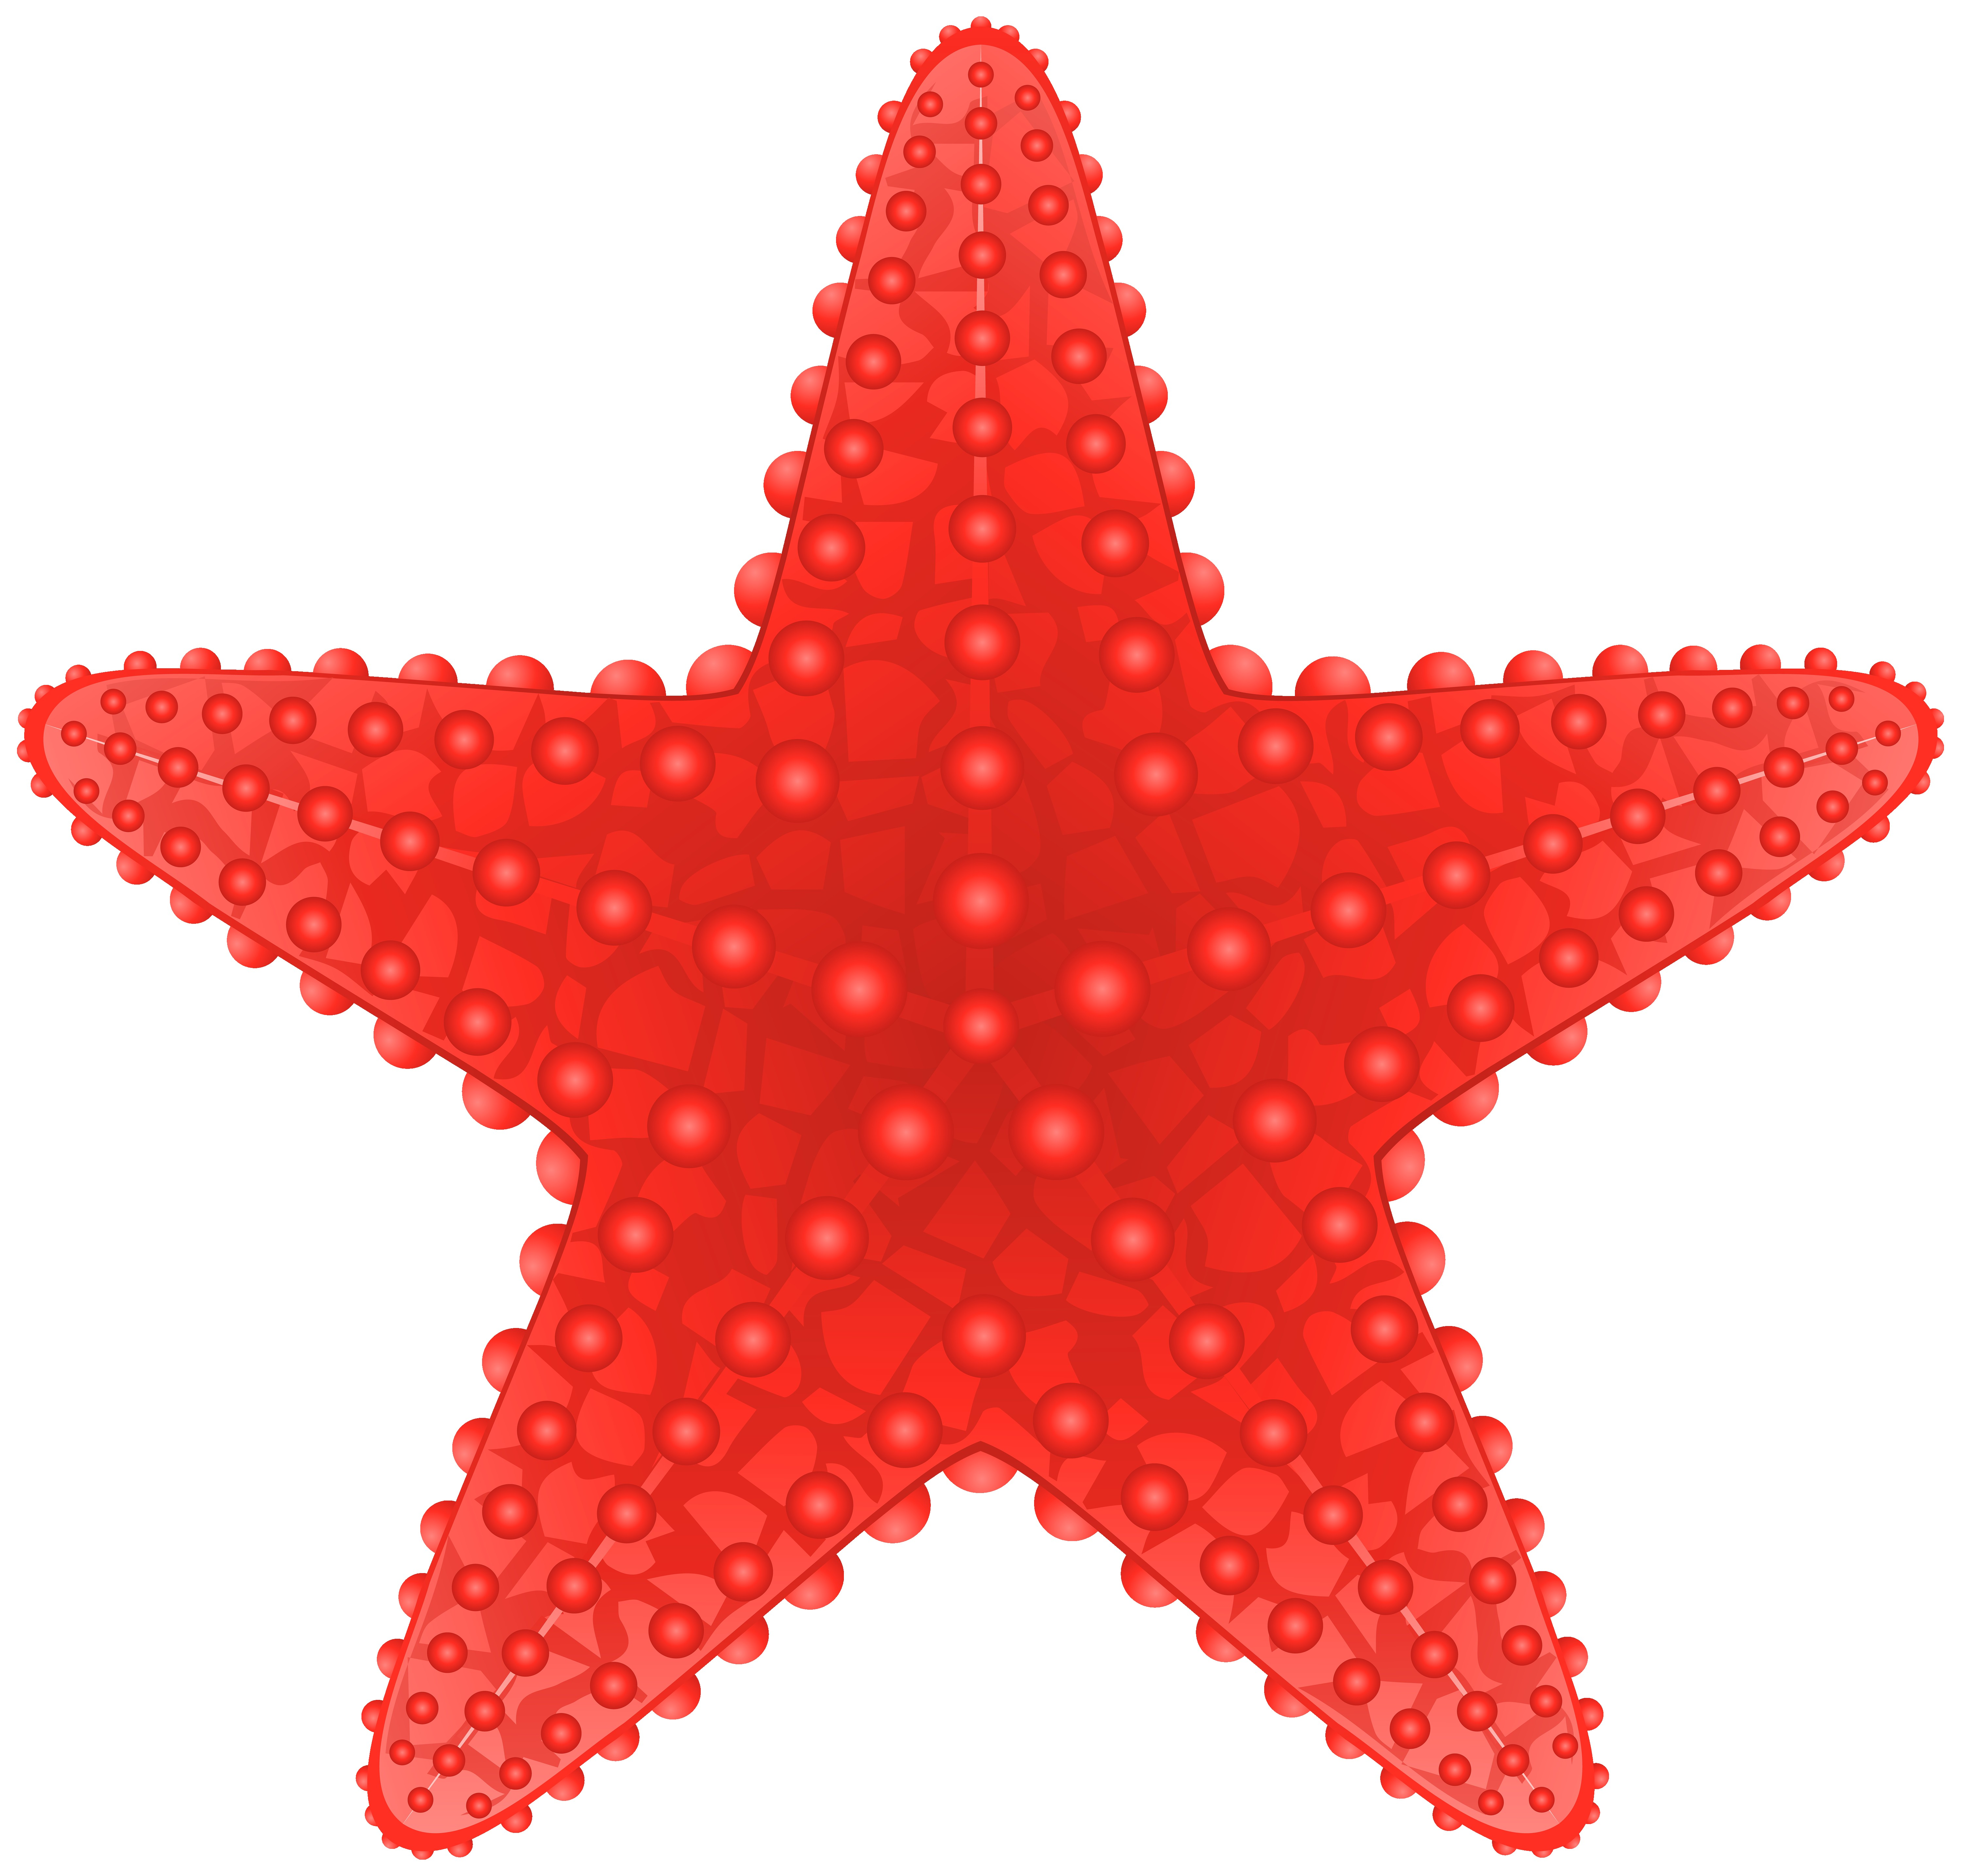 6000x5741 Starfish Transparent Png Clip Art Image Gallery Yopriceville